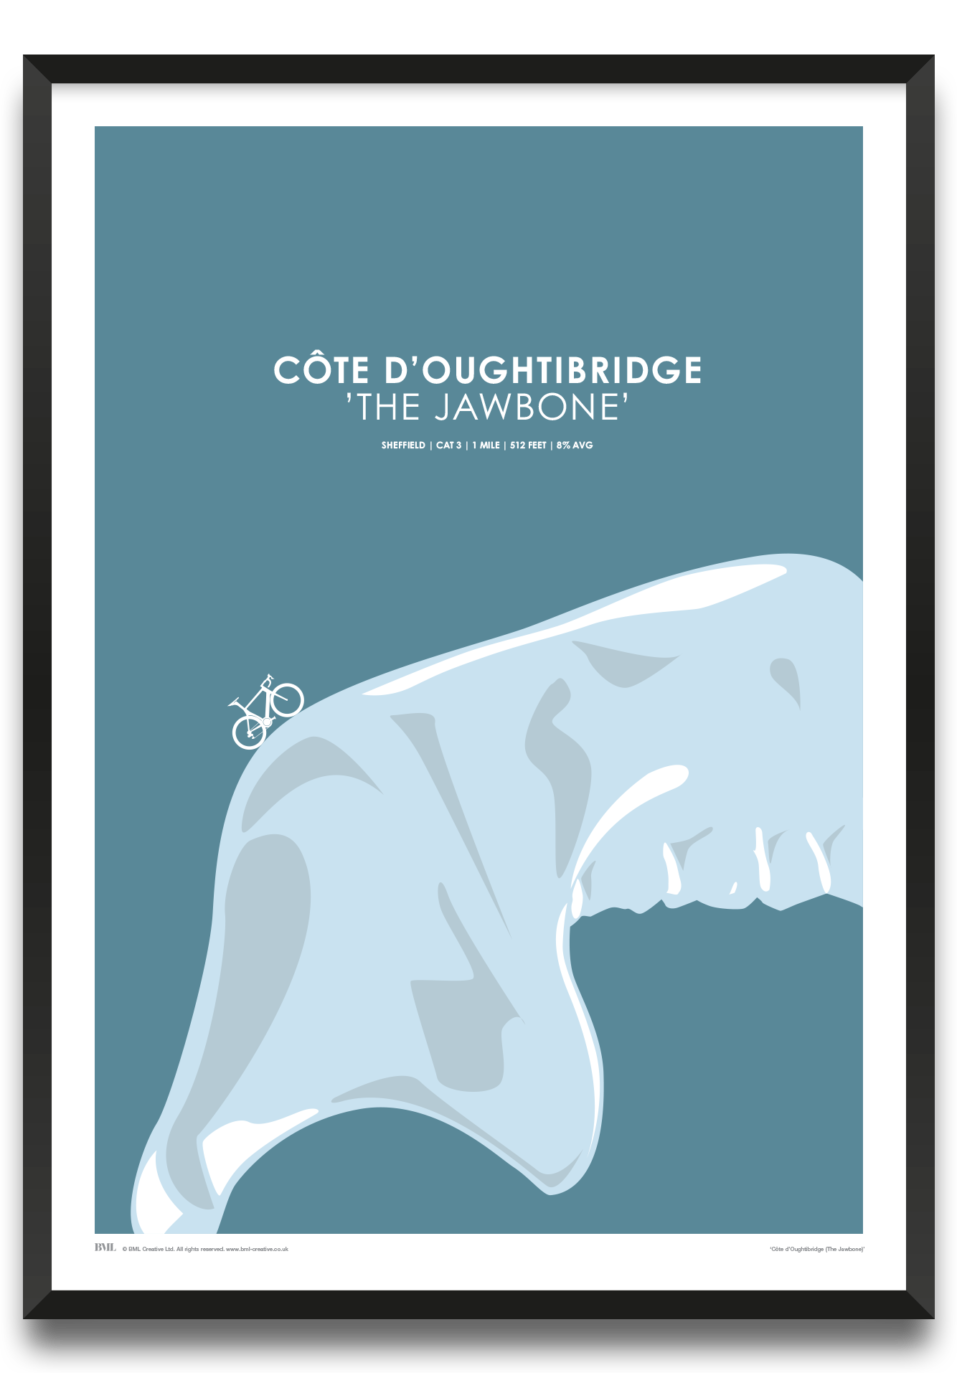 Cote d'Oughtibridge - The Jawbone, cycling screenprint by Dave Holloway, Prints for Charity